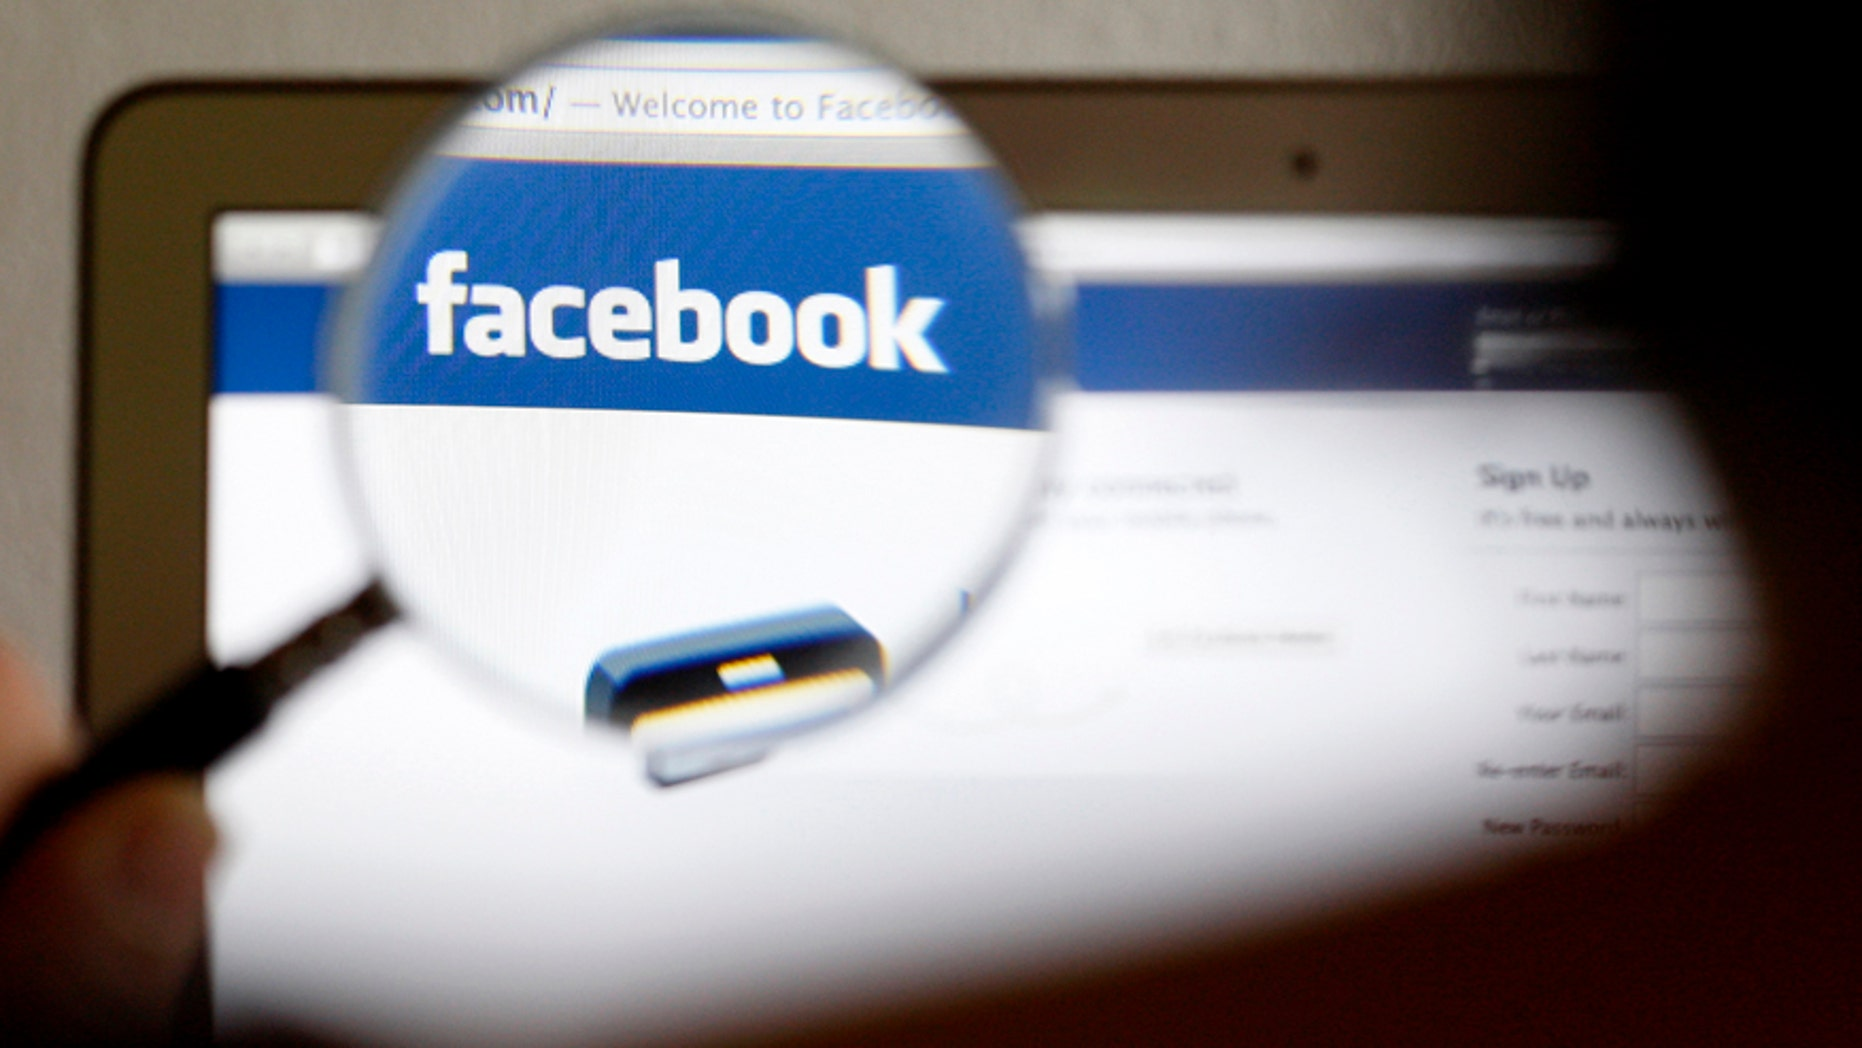 A Facebook logo on a computer screen is seen through a magnifying glass held by a woman in Bern, May 19, 2012.